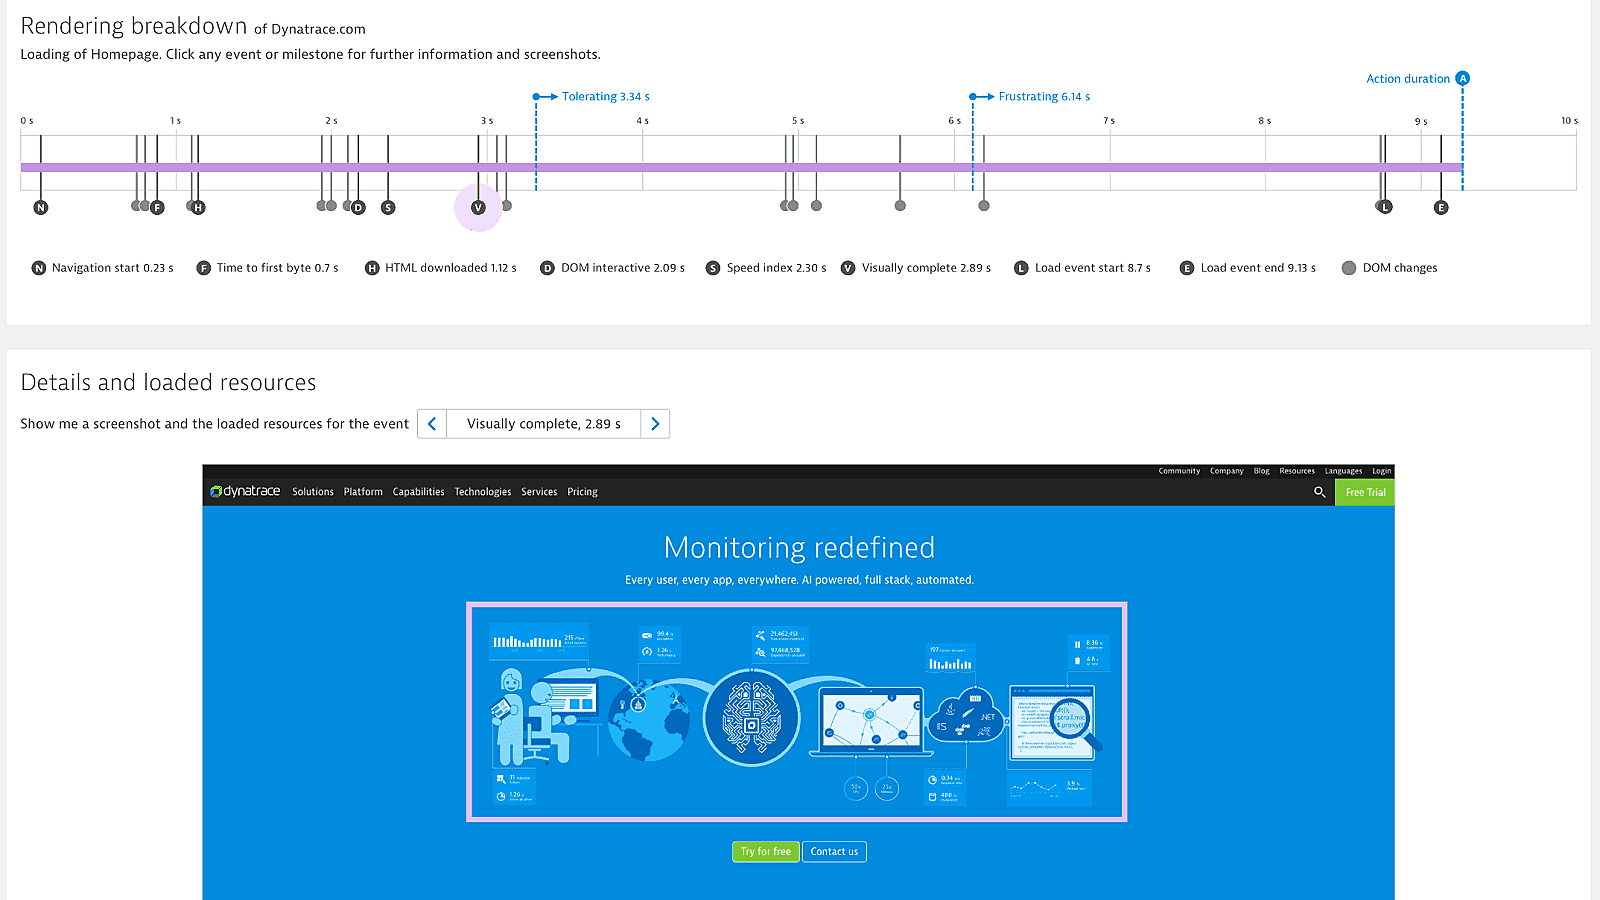 Visually complete measures exactly how long it takes your web page to become fully loaded visually and ready to be used (2.89 s)